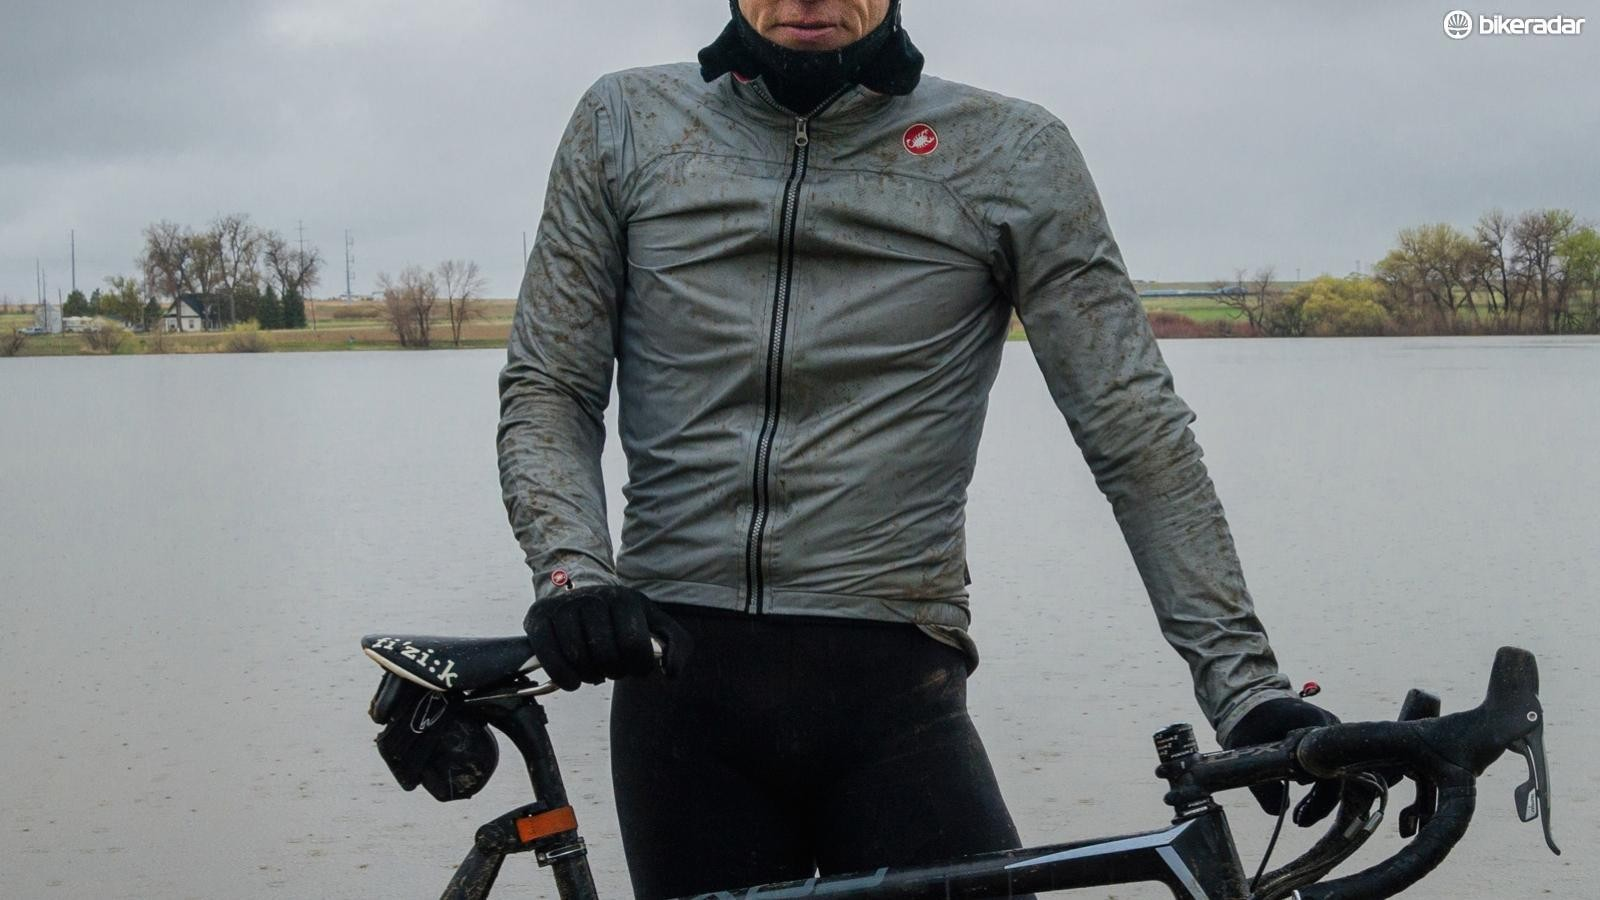 A waterproof jacket's Durable Water Resistant (DWR) coating can wear out over time, which means the fabric will eventually 'wet out'